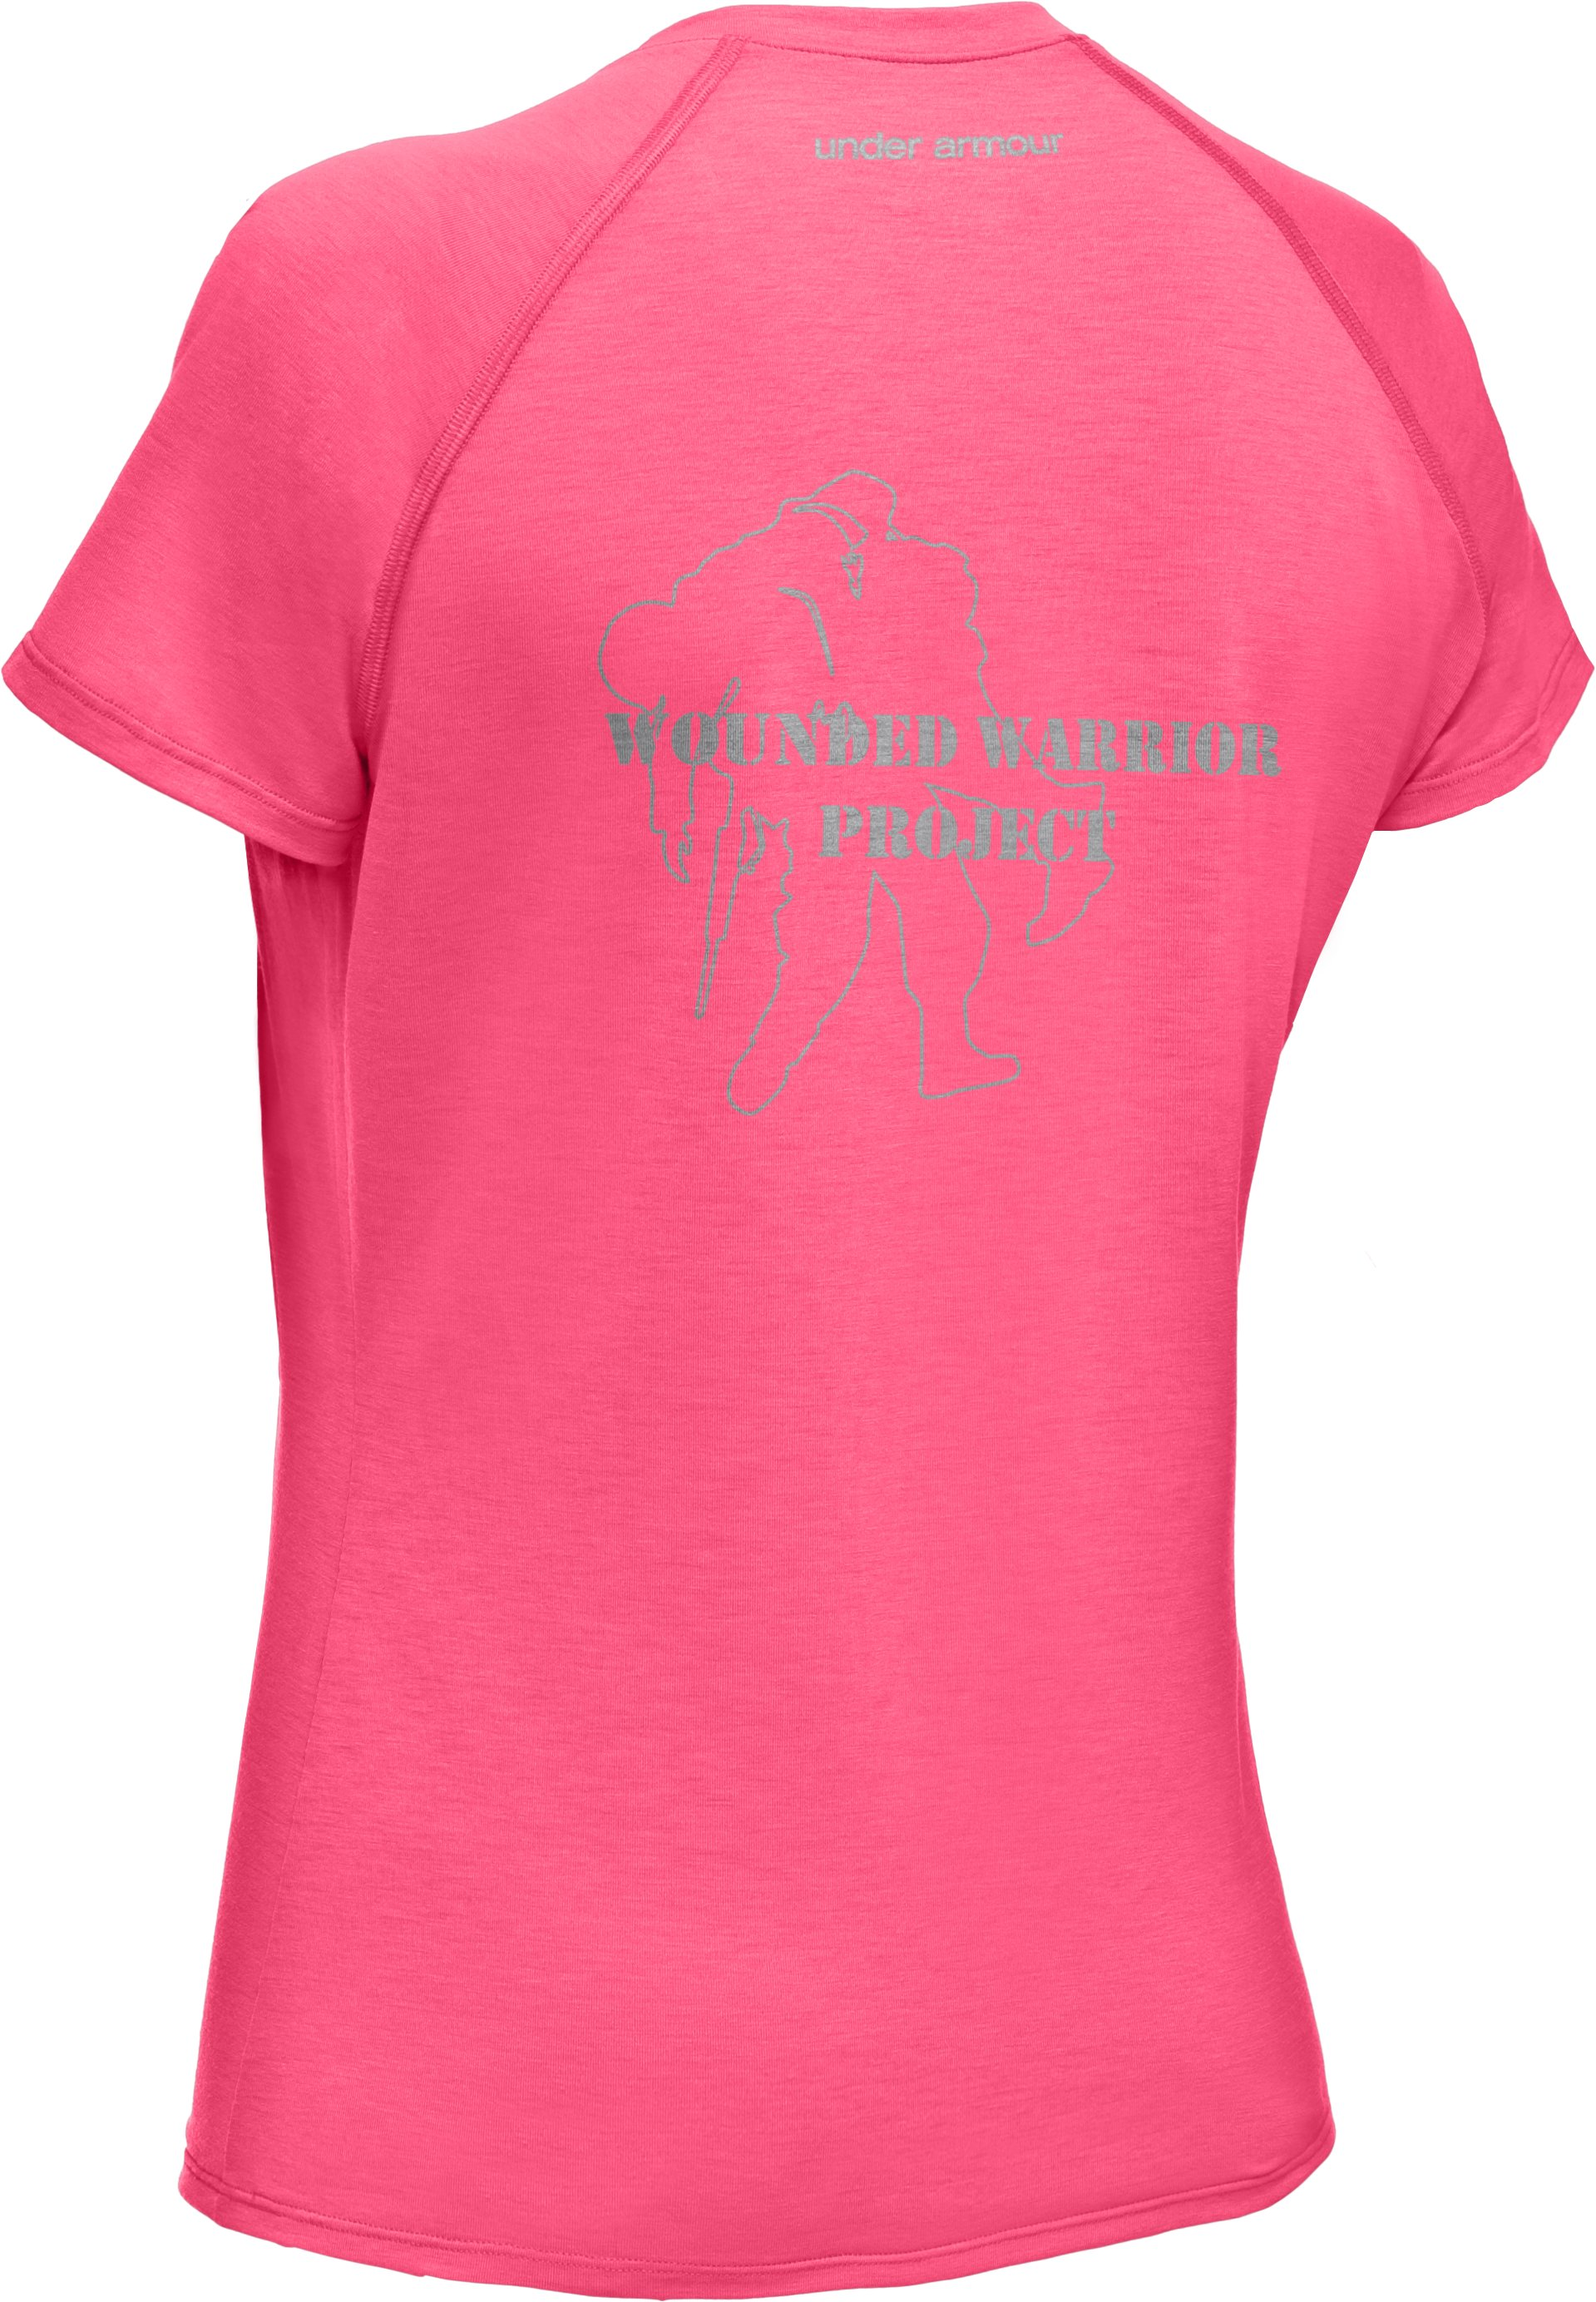 Women's WWP Graphic T-Shirt, Perfection